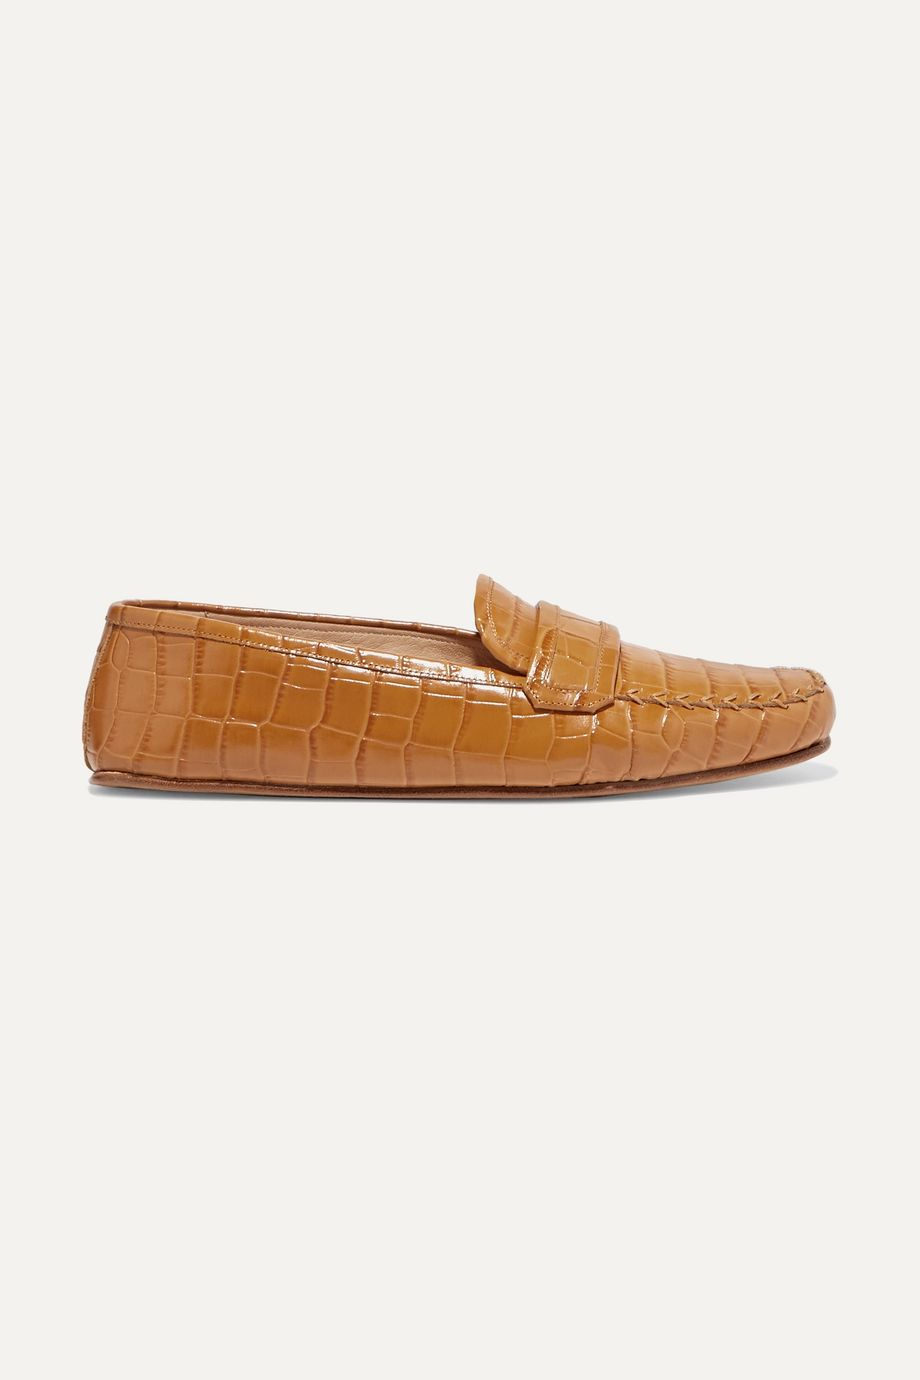 Gabriela Hearst Brodie croc-effect leather loafers